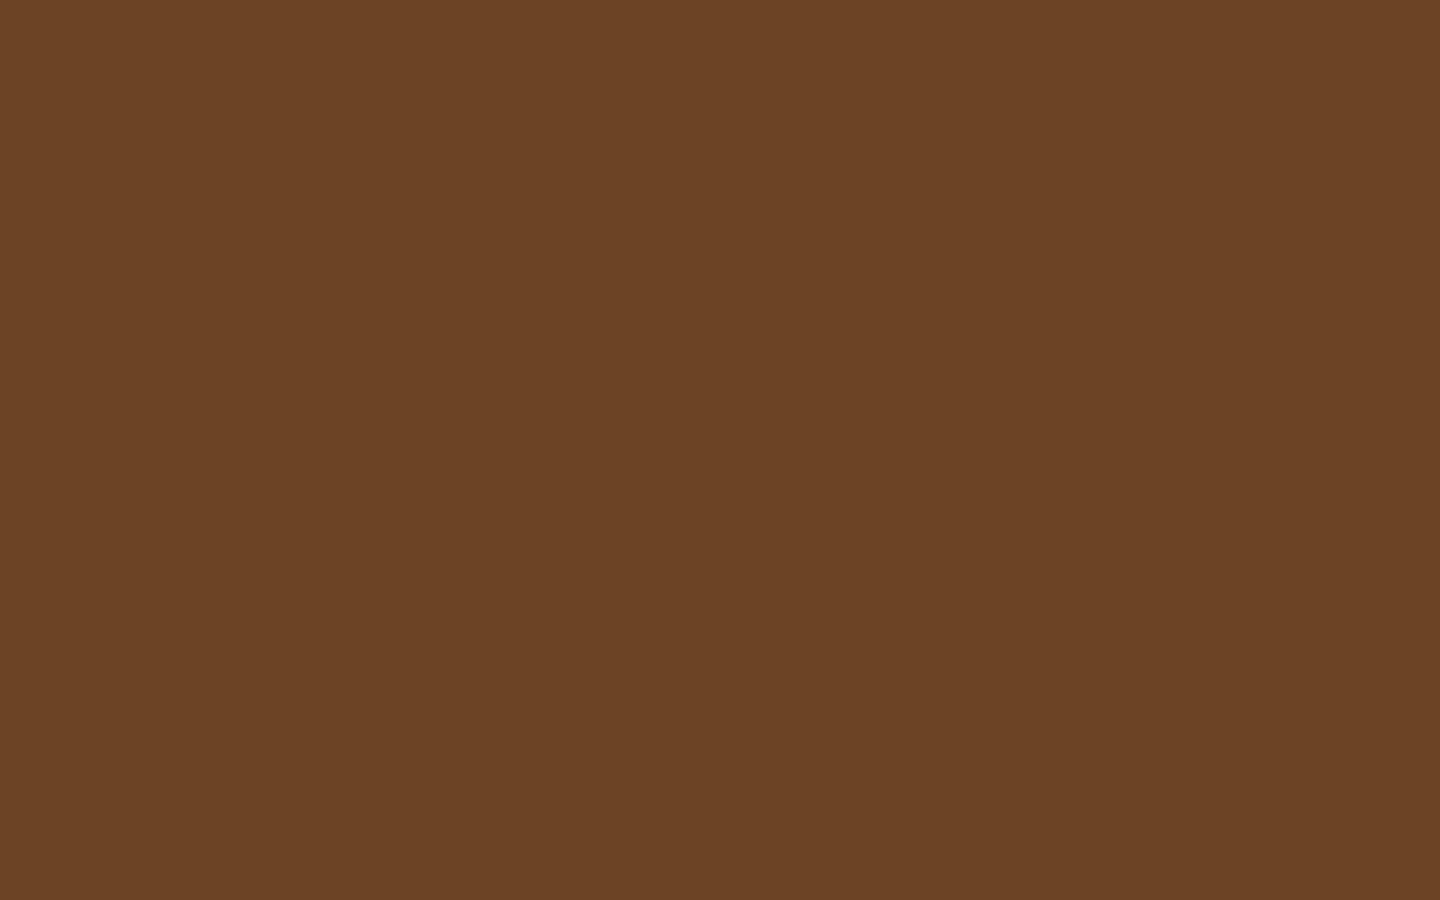 1440x900 Brown-nose Solid Color Background